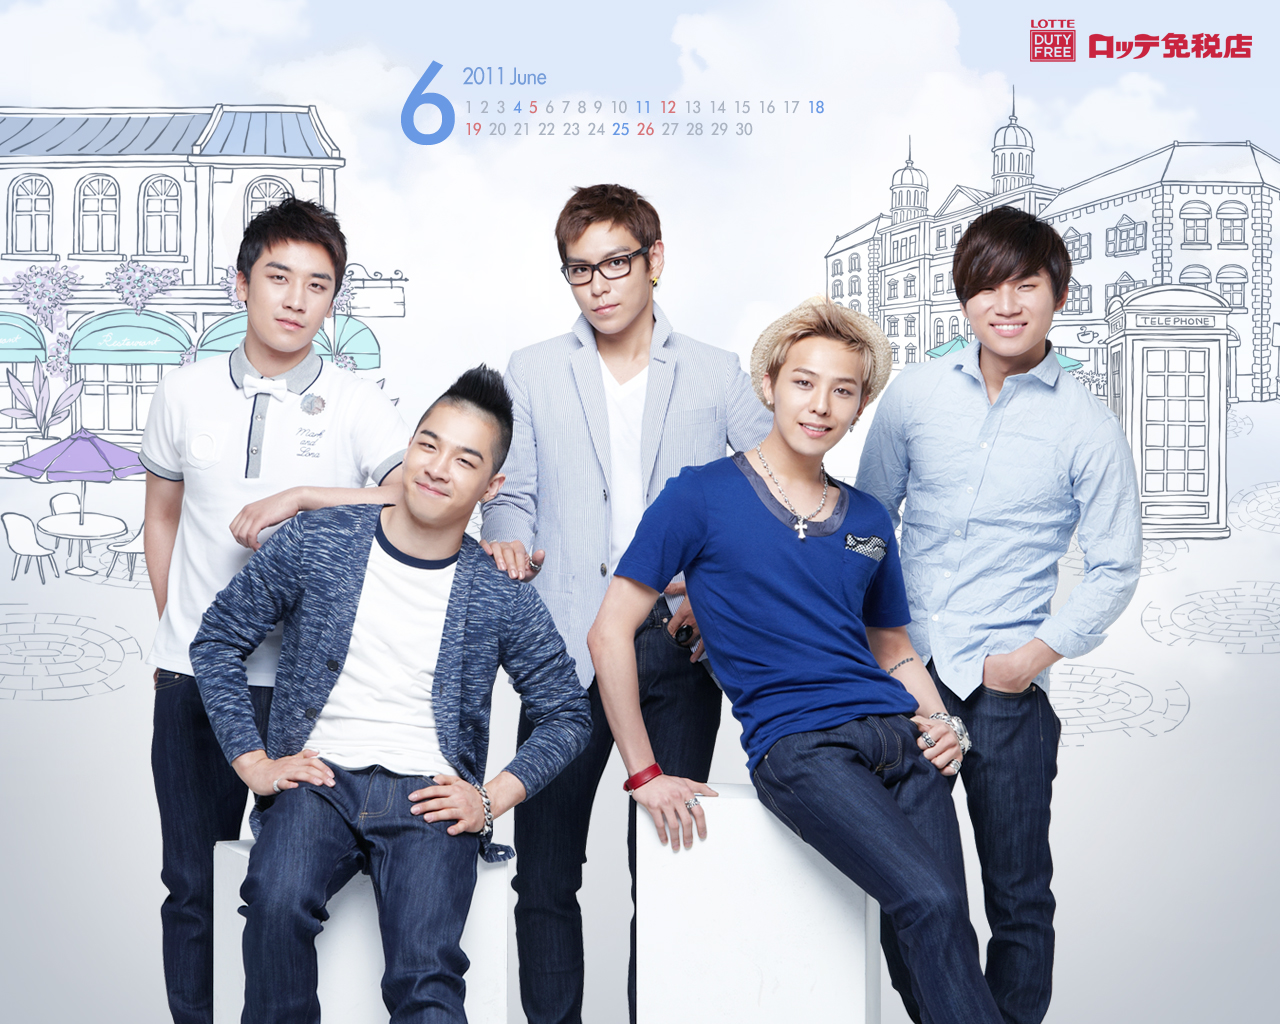 Lotte Duty Free Official 壁紙 Calendar Bigbang 壁紙 34505017